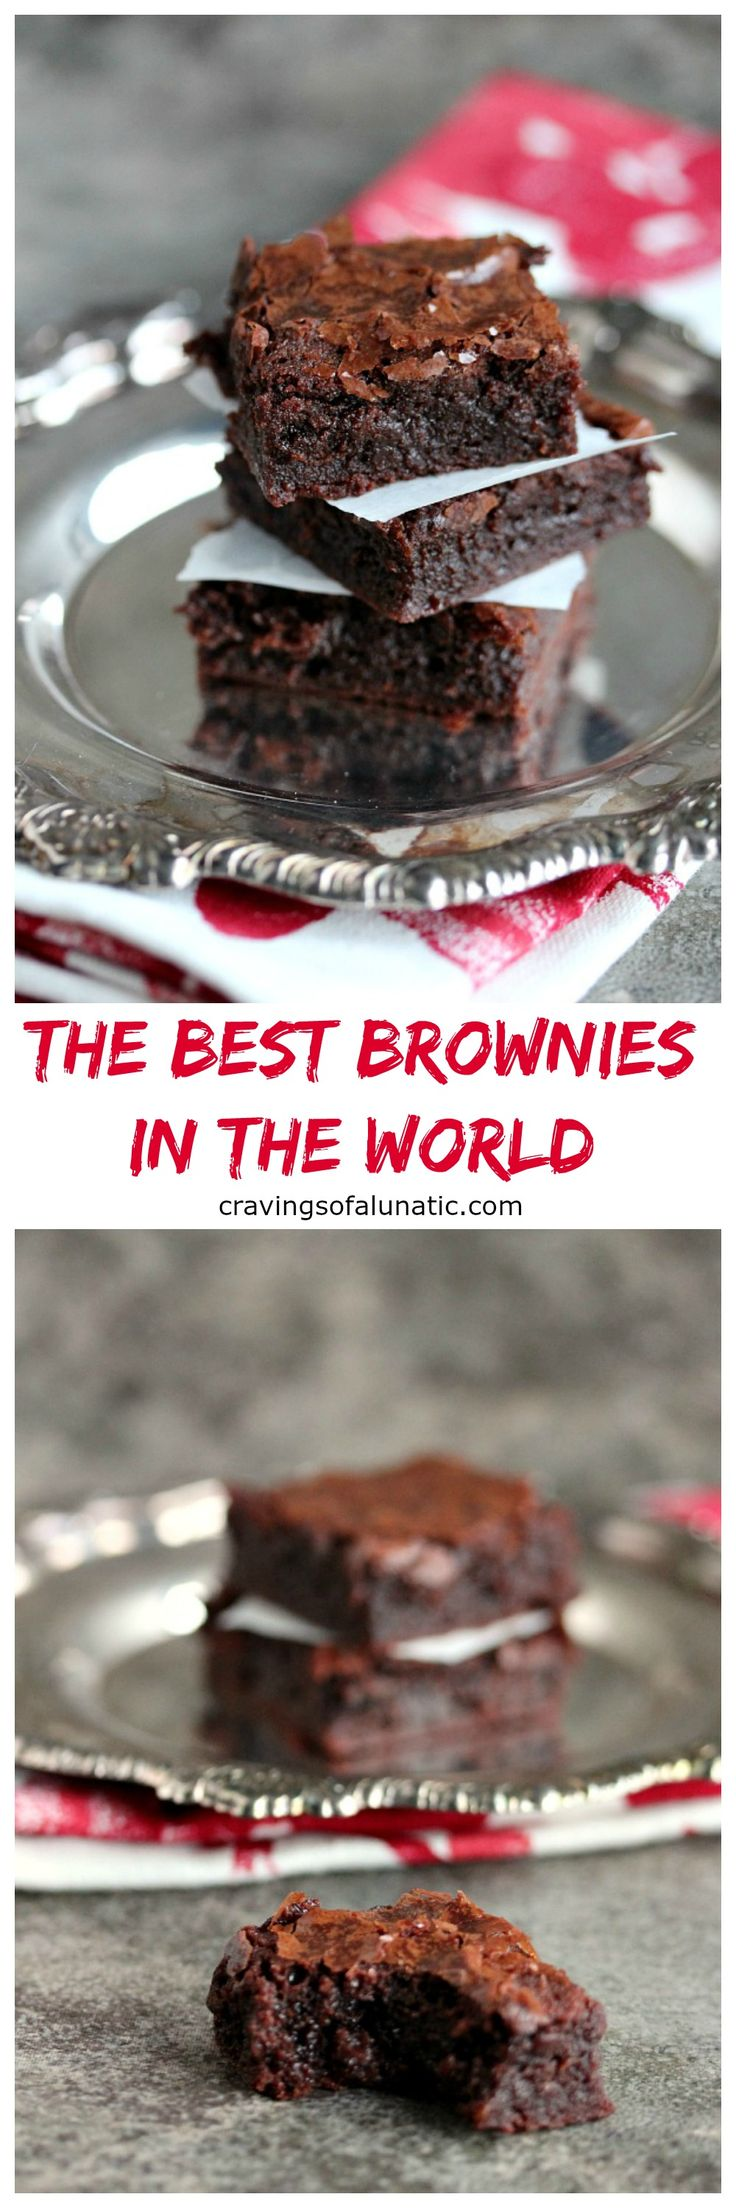 The Best Brownies in the World are ooey, gooey, fudgy brownies that will become a family favourite. I rarely make any other brownie recipe because we love this one so much!